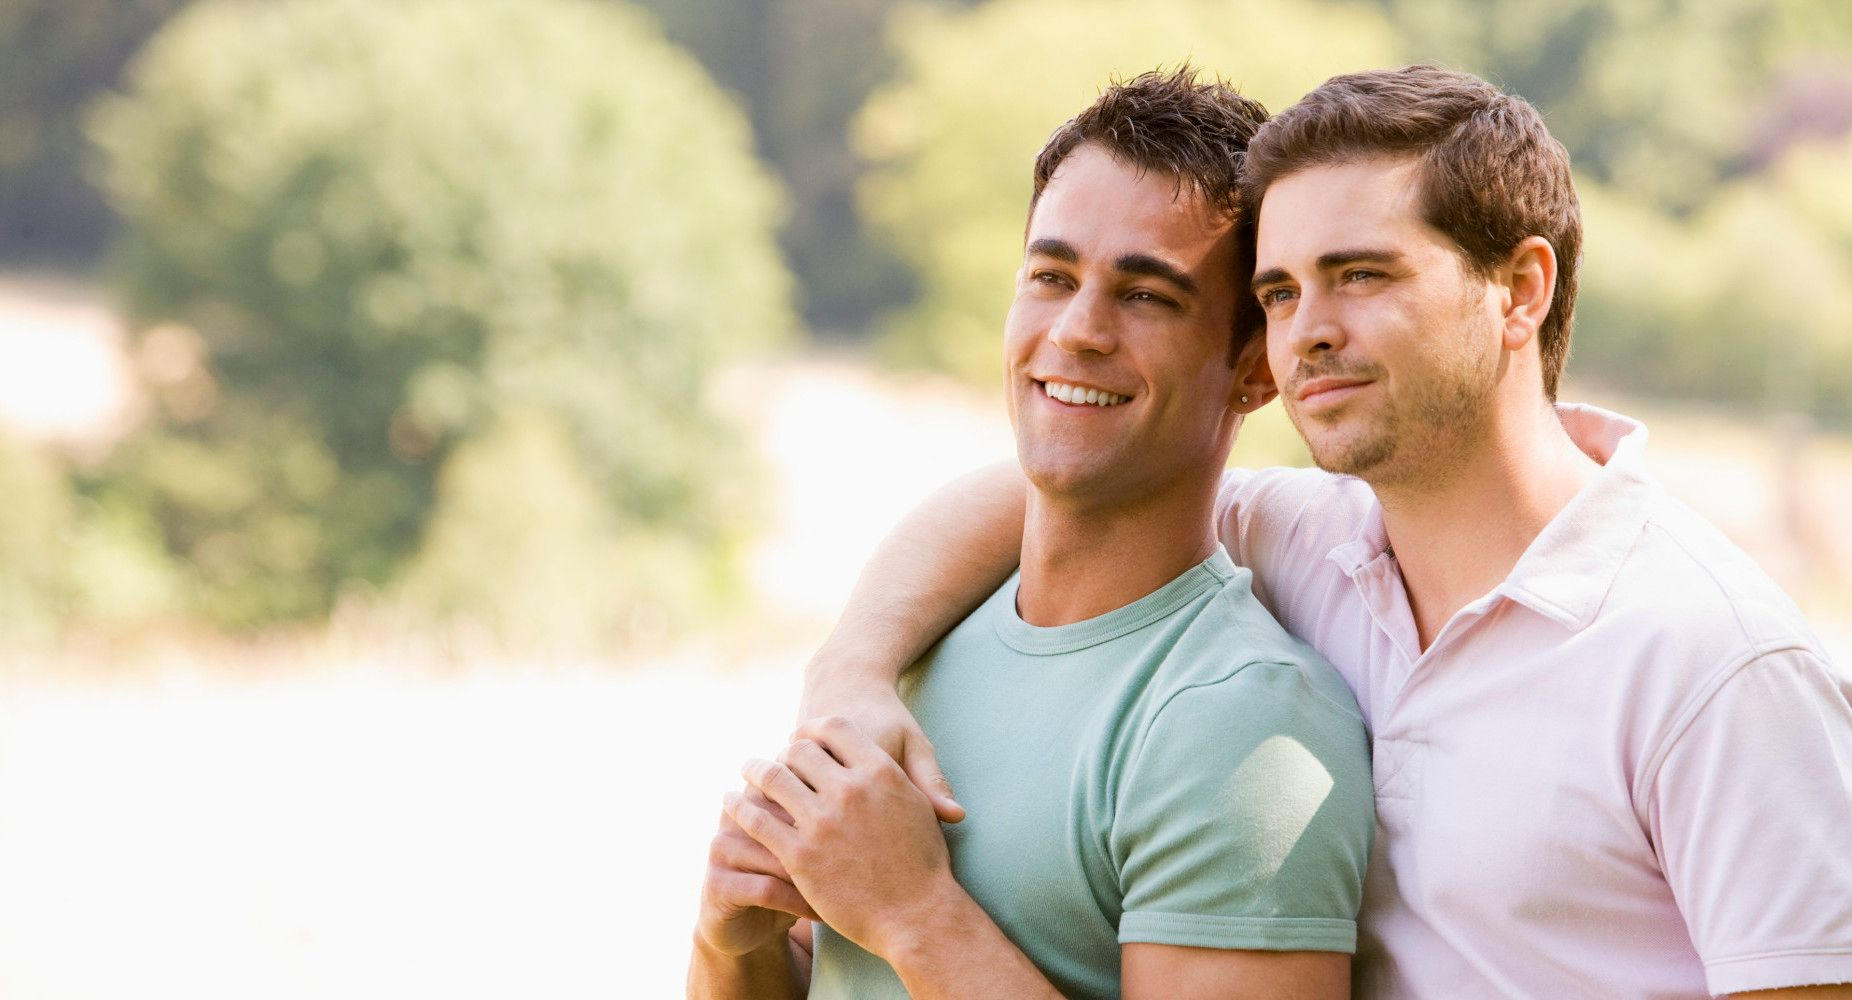 Hookup a man with multiple partners